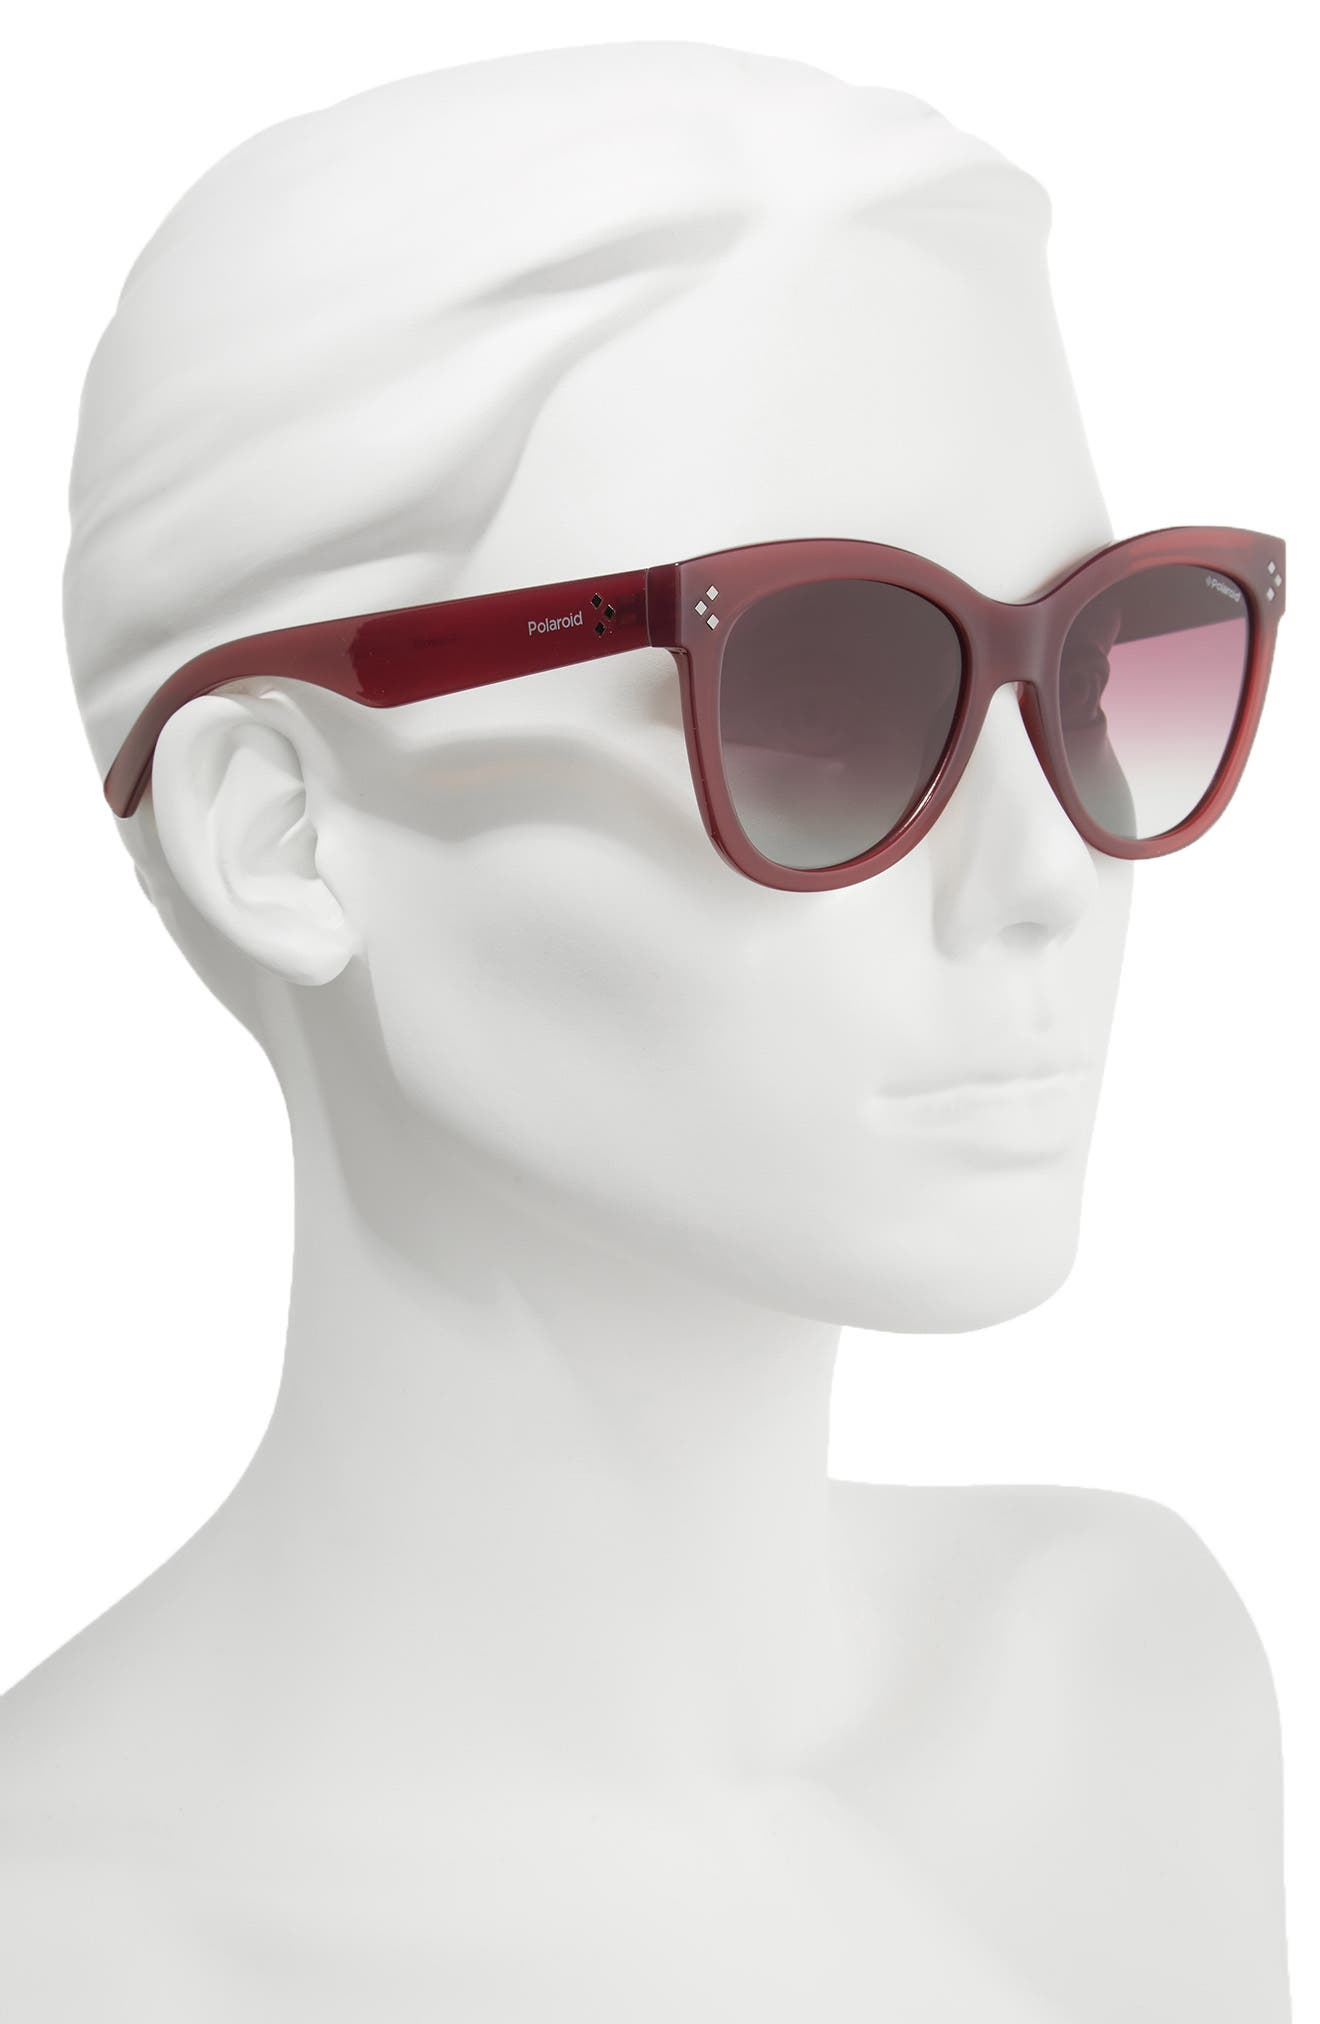 54mm Polarized Sunglasses,                             Alternate thumbnail 3, color,                             Red